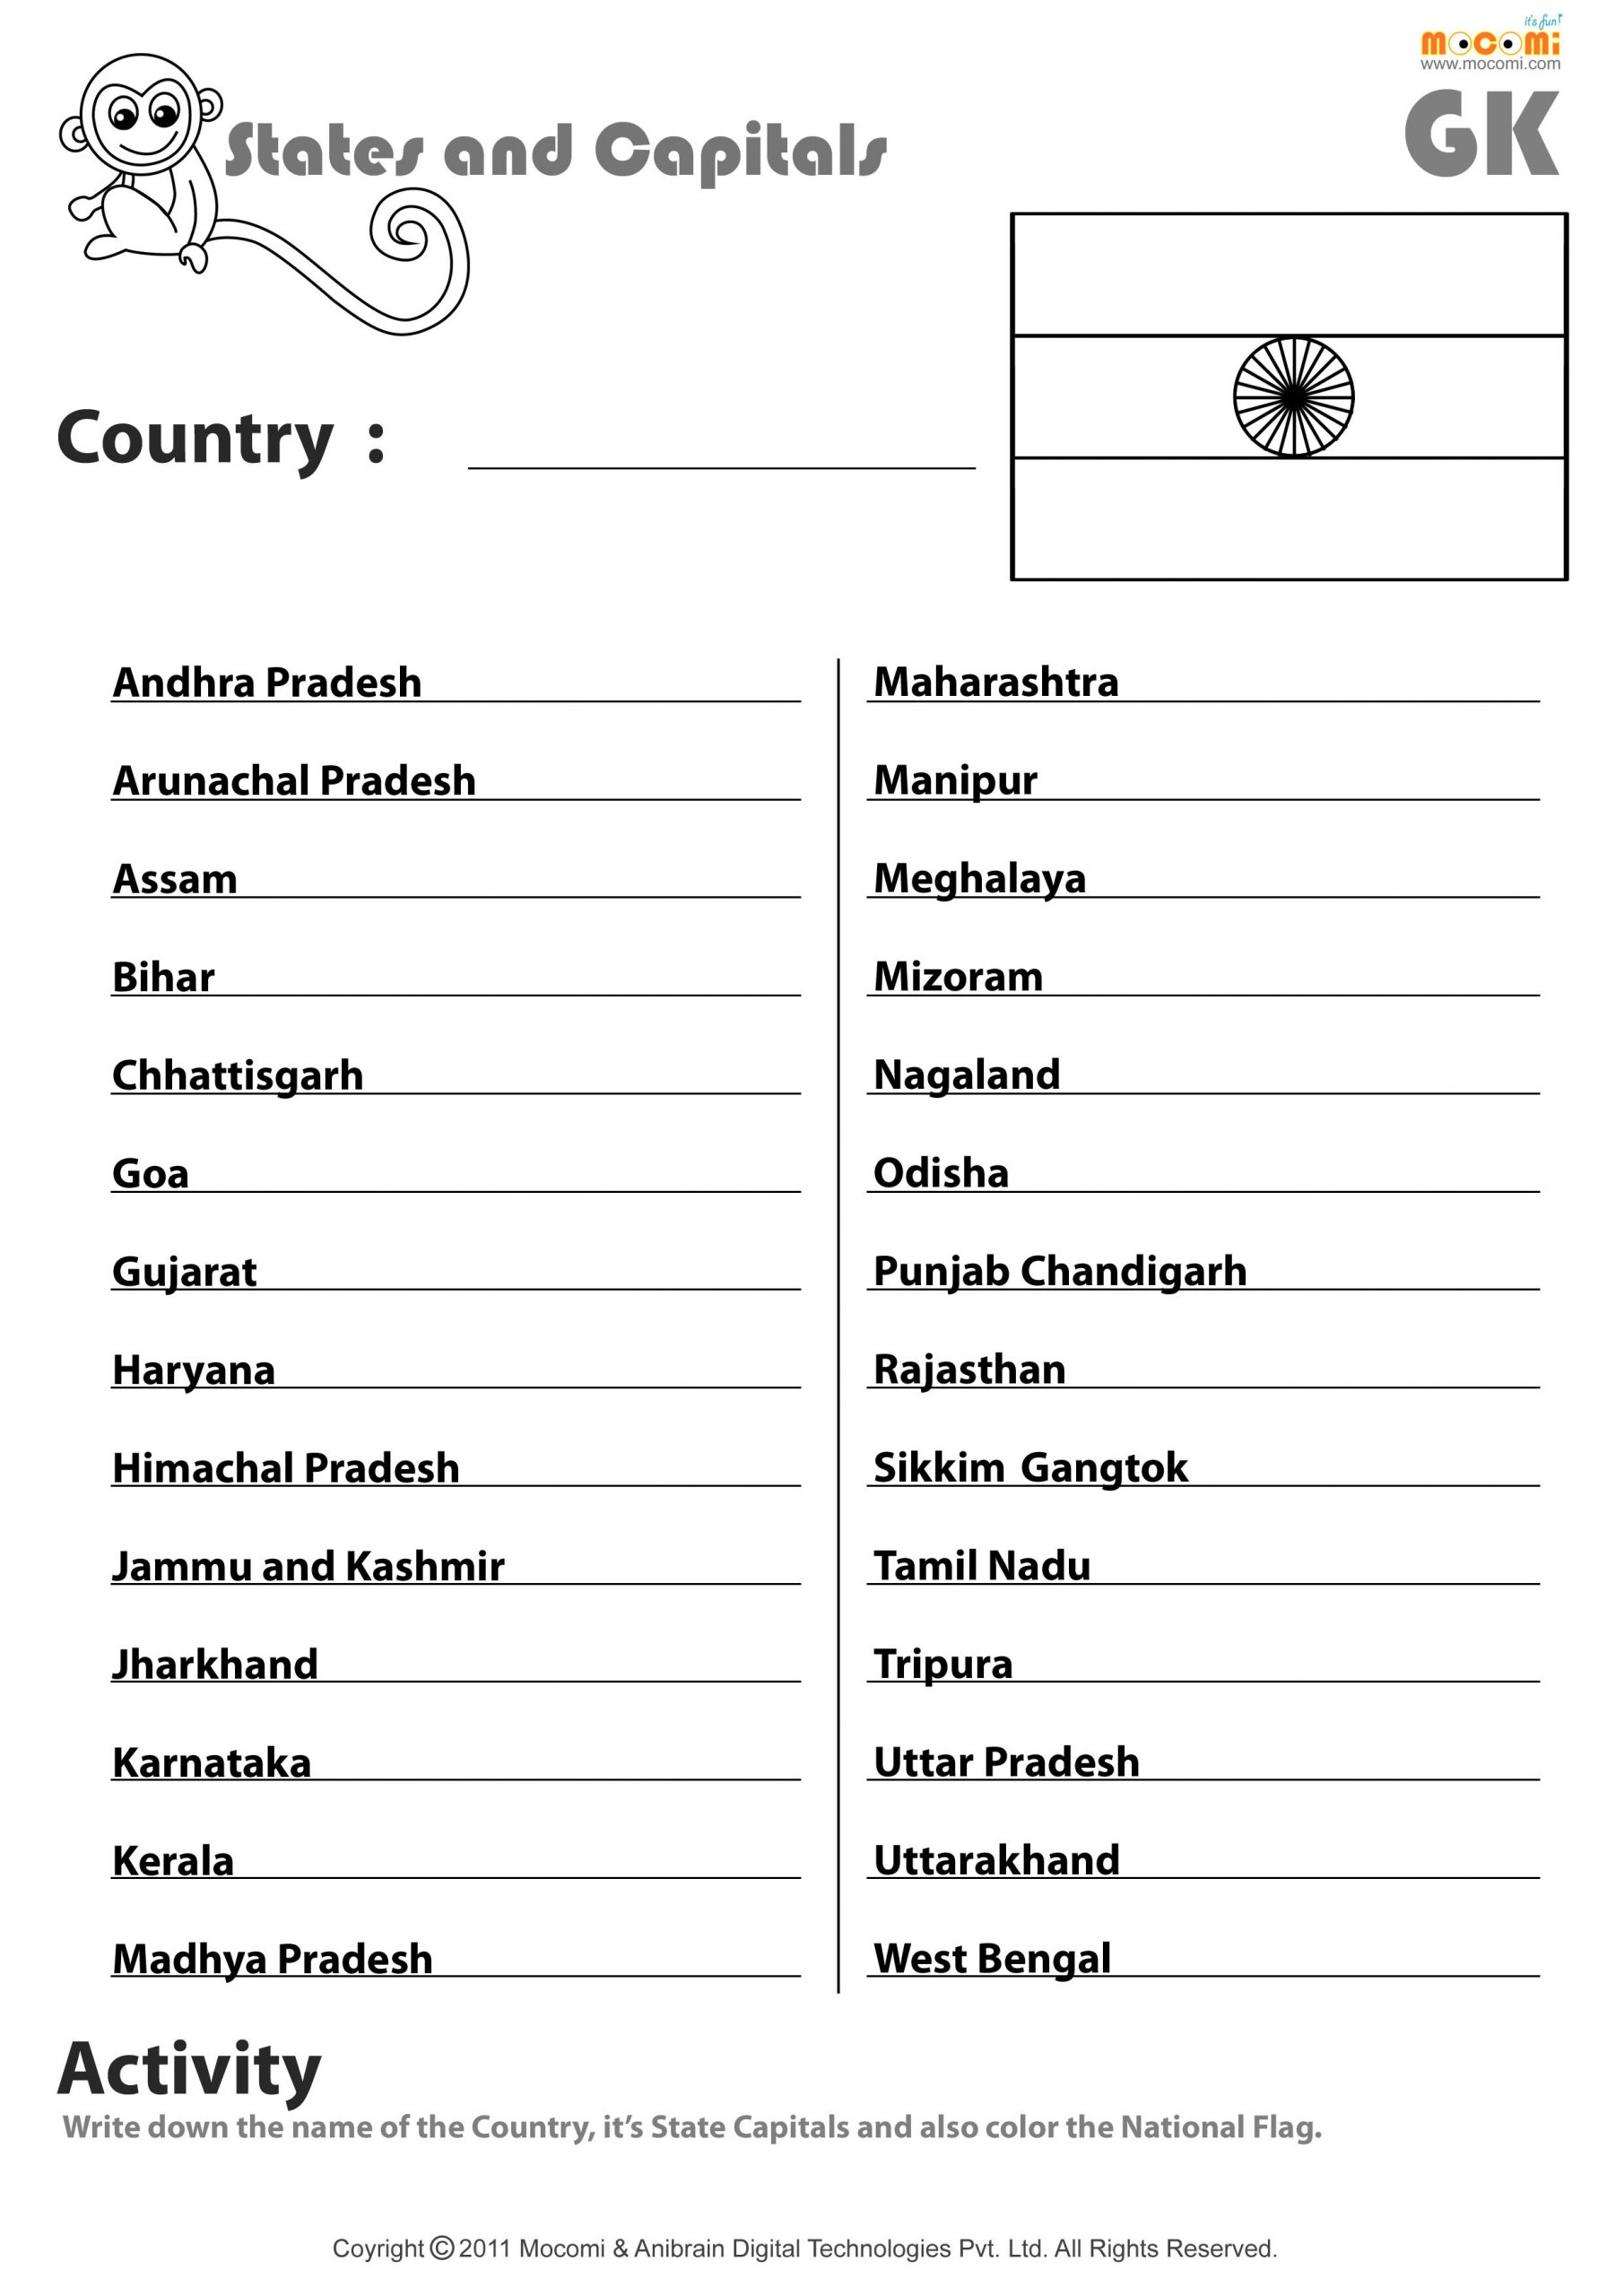 United States Capitals Quiz Printable Indian States and their Capitals English Worksheets for